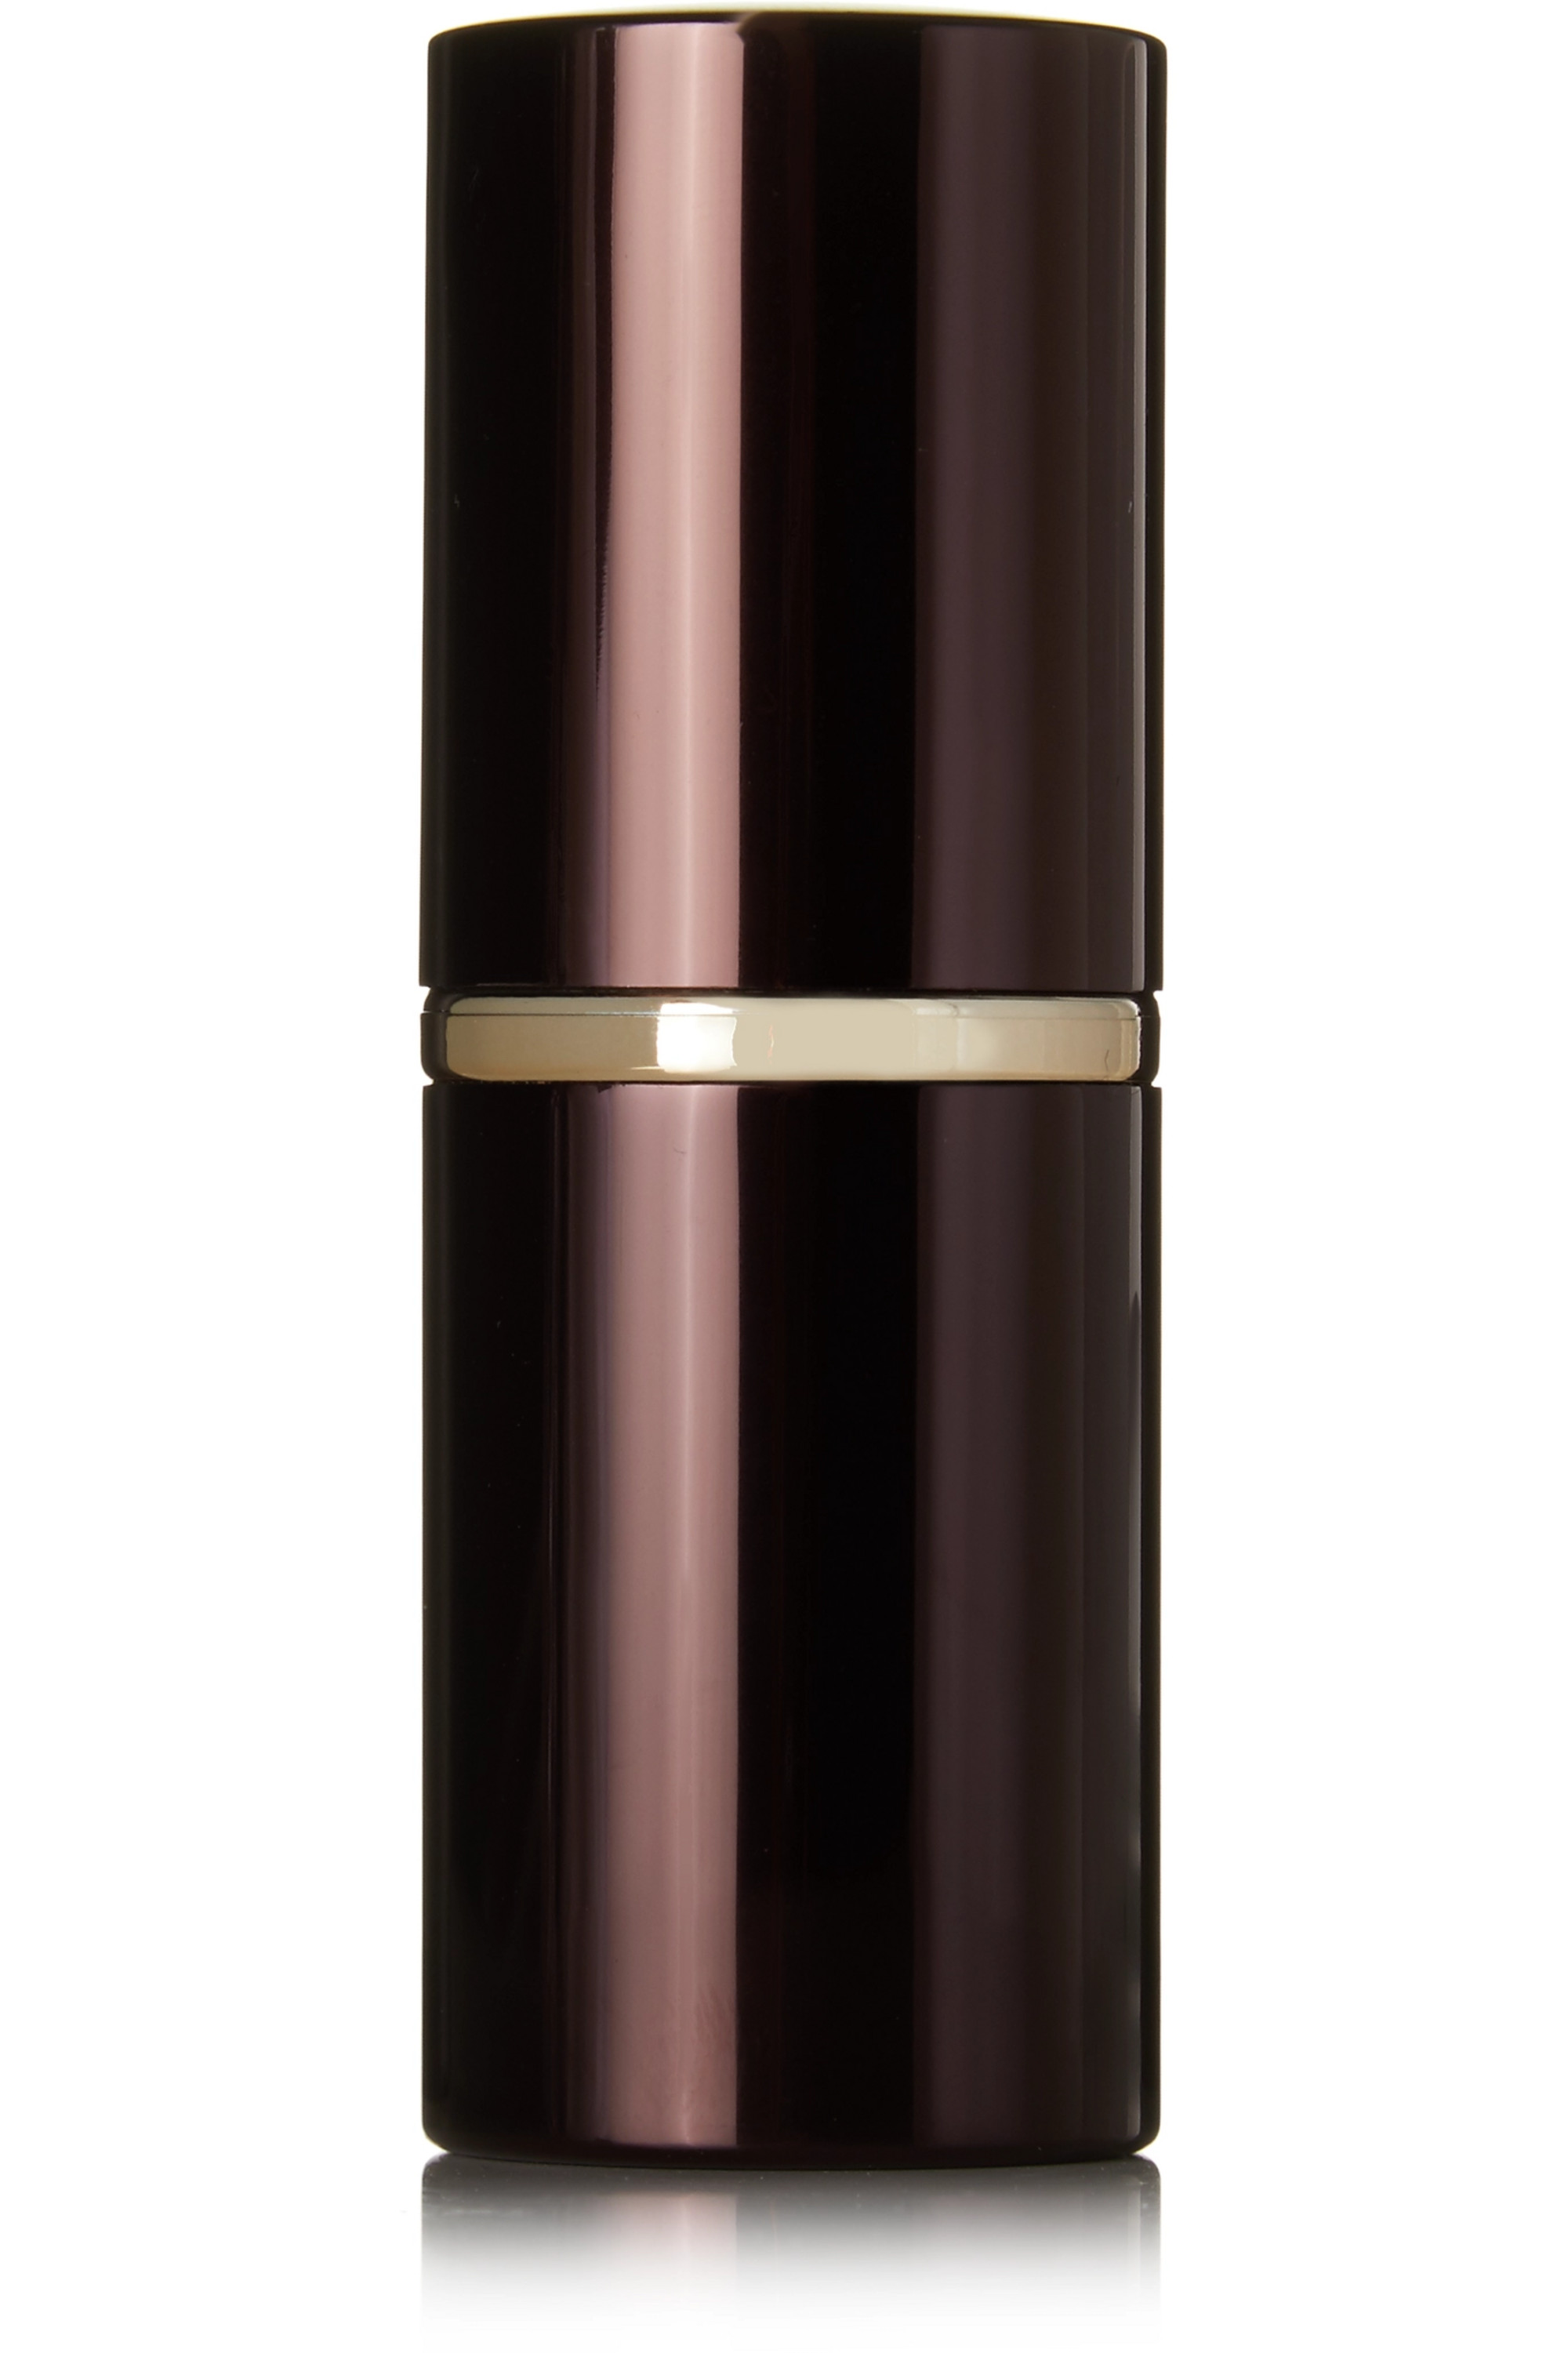 TOM FORD BEAUTY Fond de teint stick Invisible, 7.0 Tawny